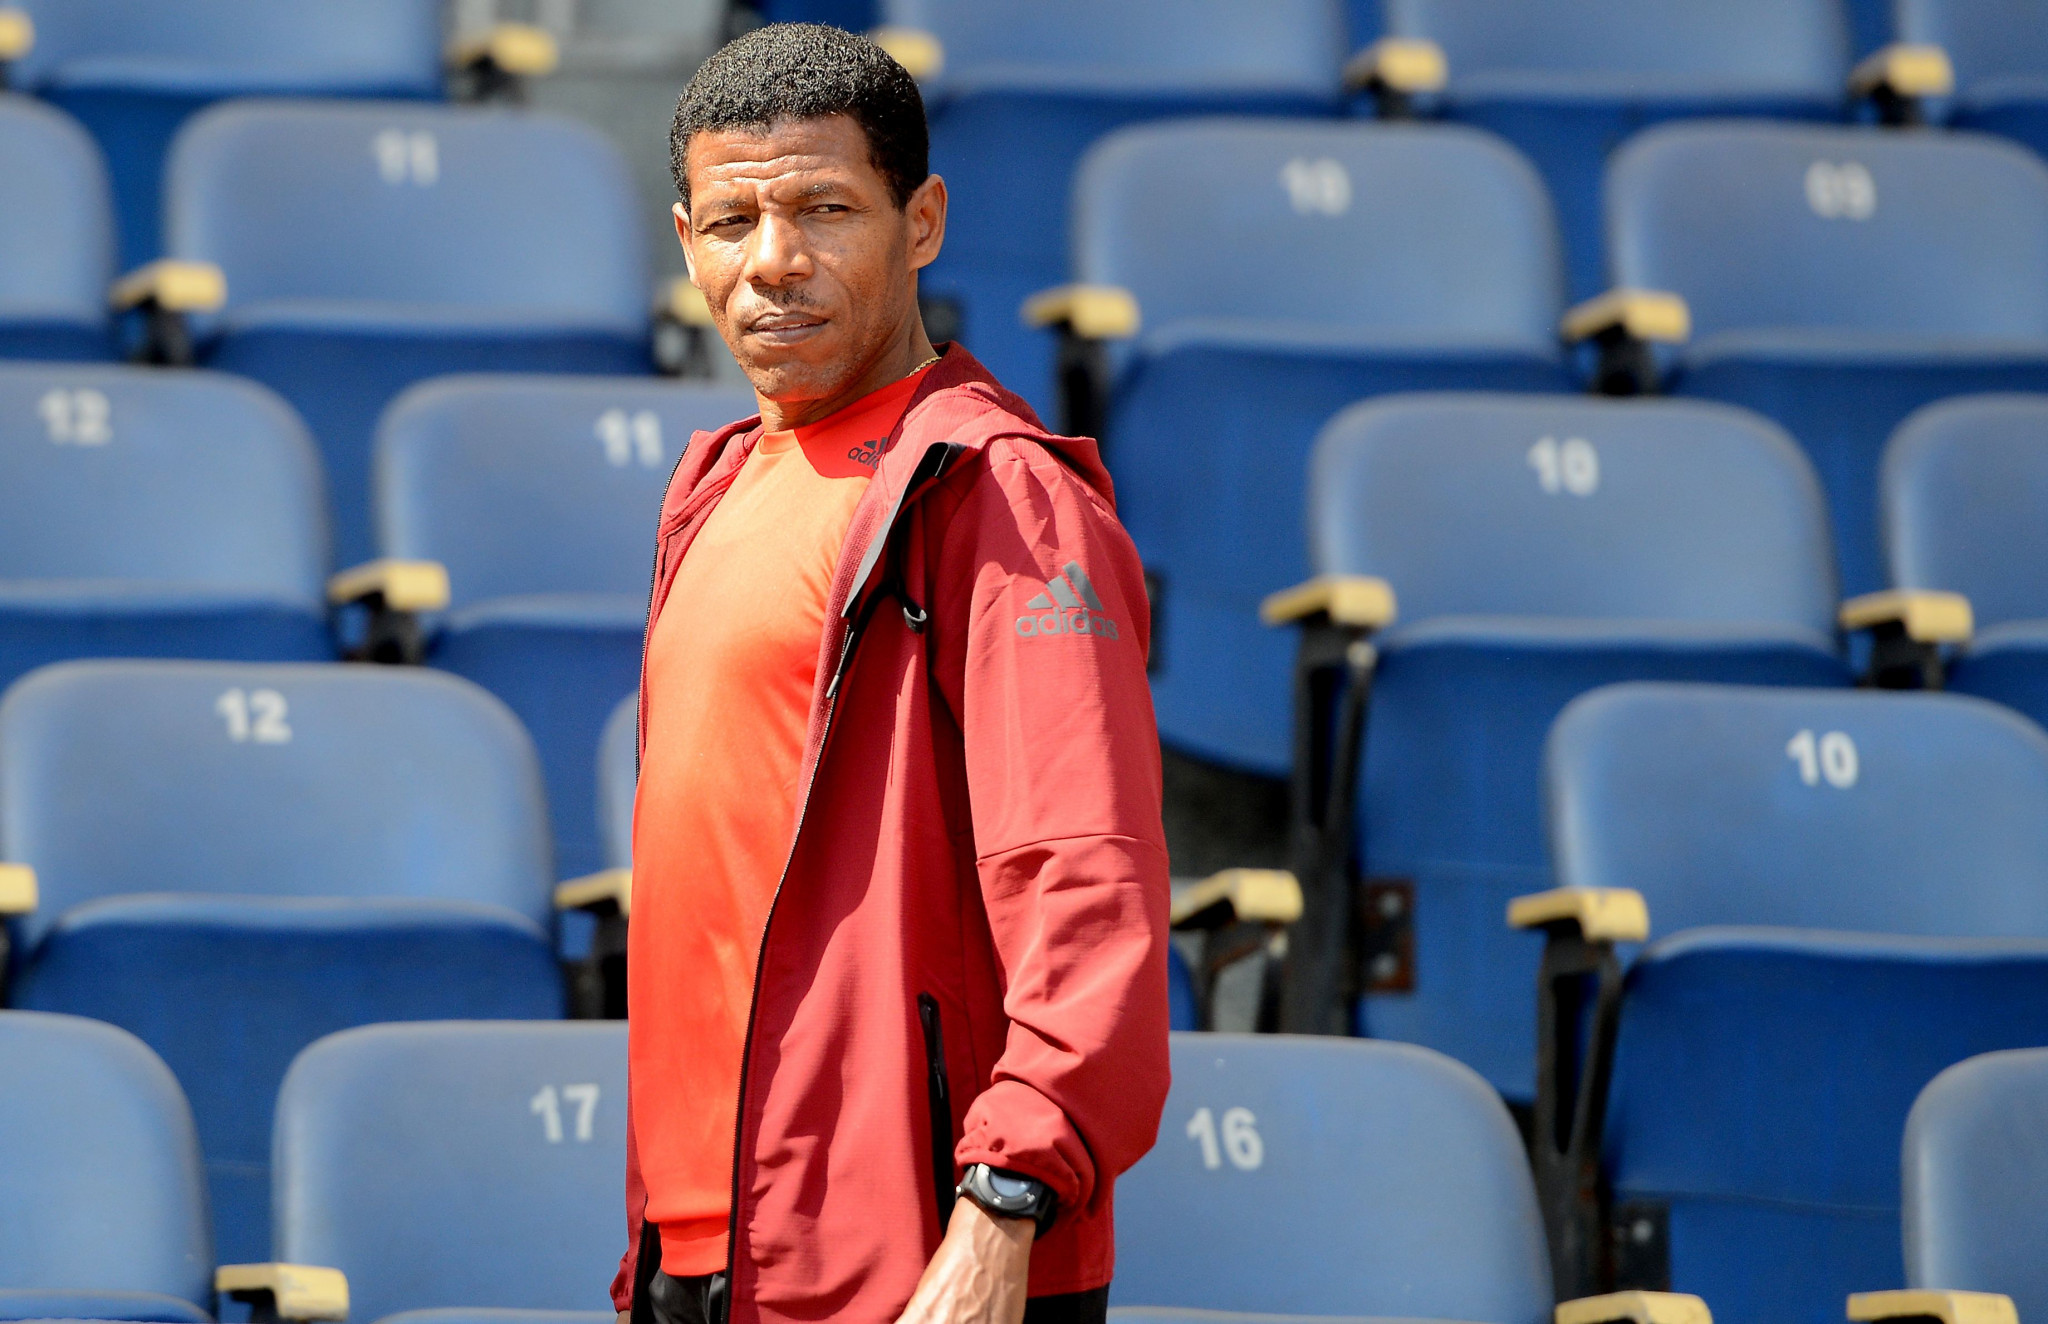 Haile Gebrselassie launched a scathing response to allegations made by Mo Farah ©Getty Images